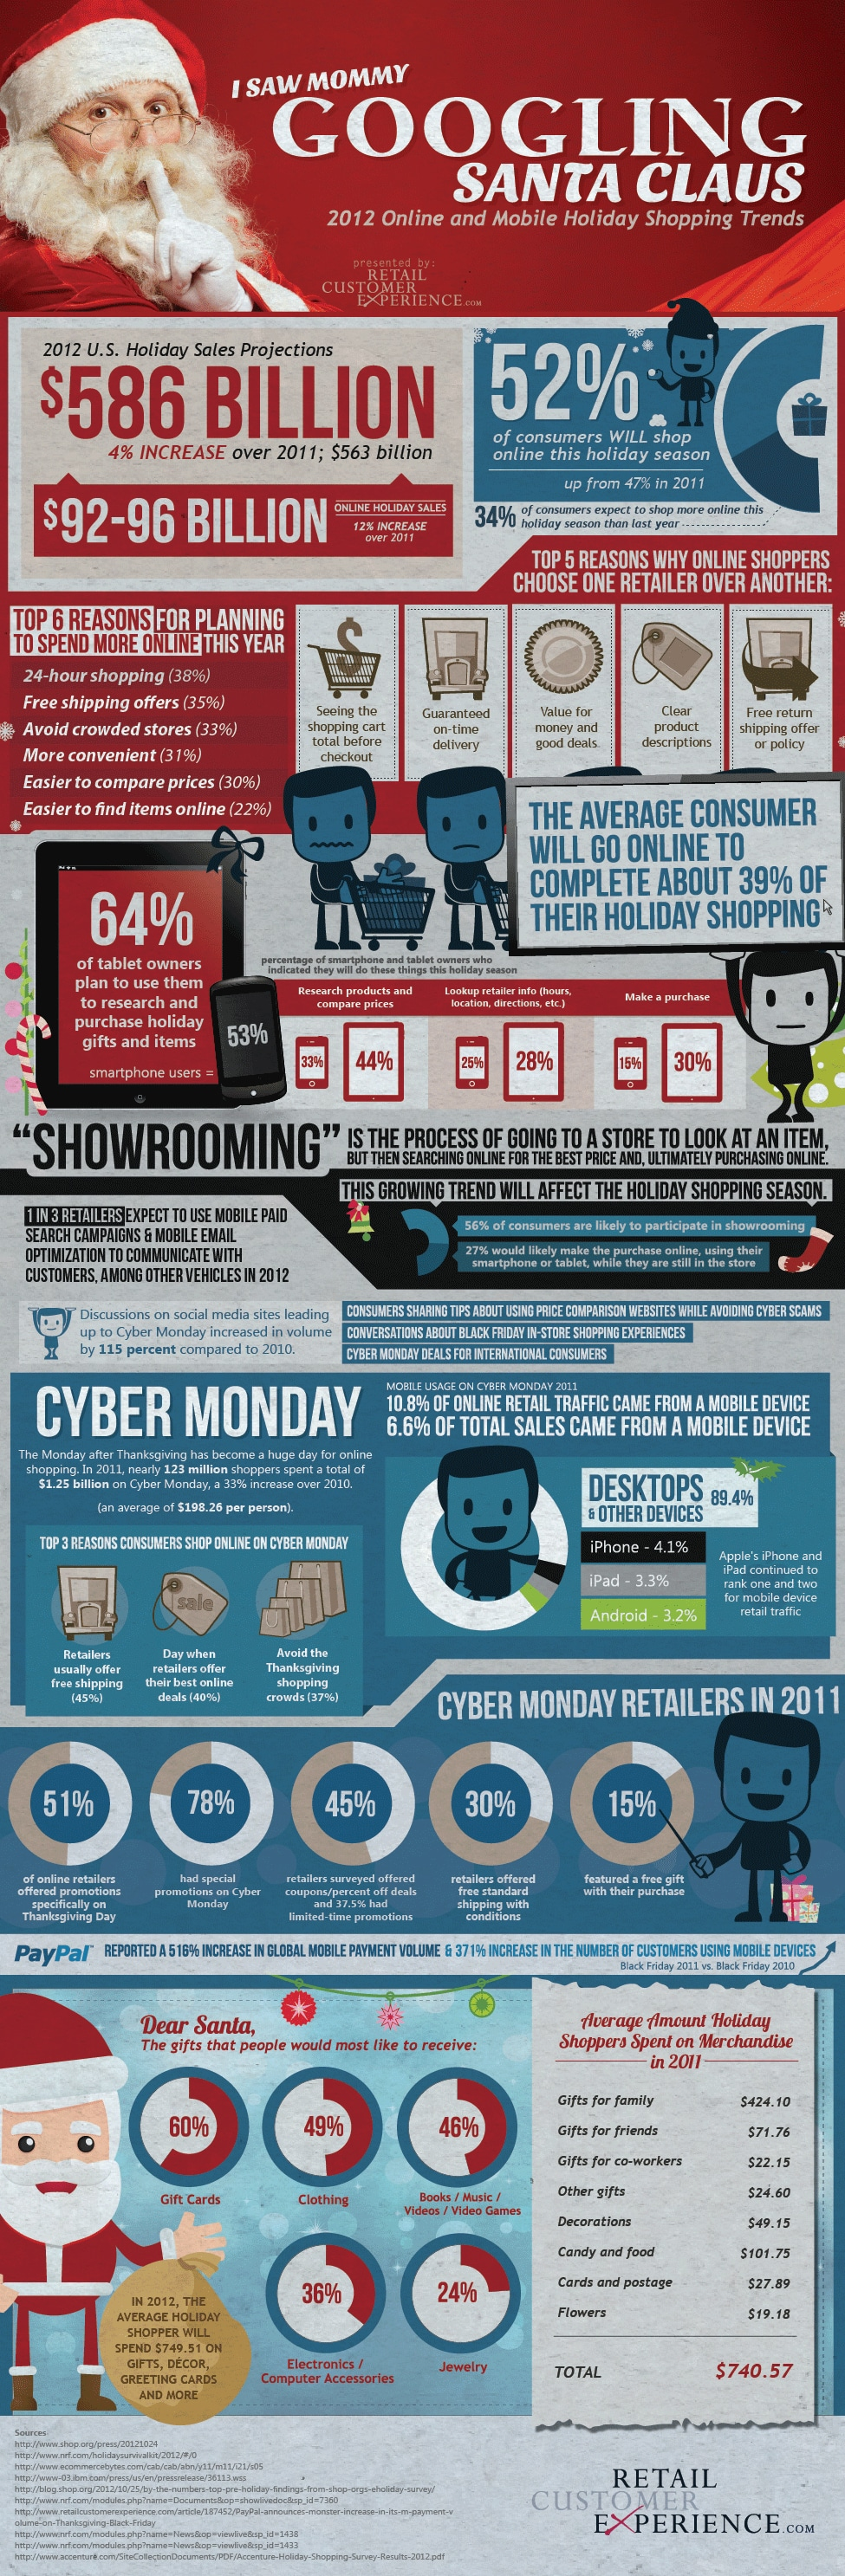 2012 Holiday Online & Mobile Shopping Trends [Infographic]